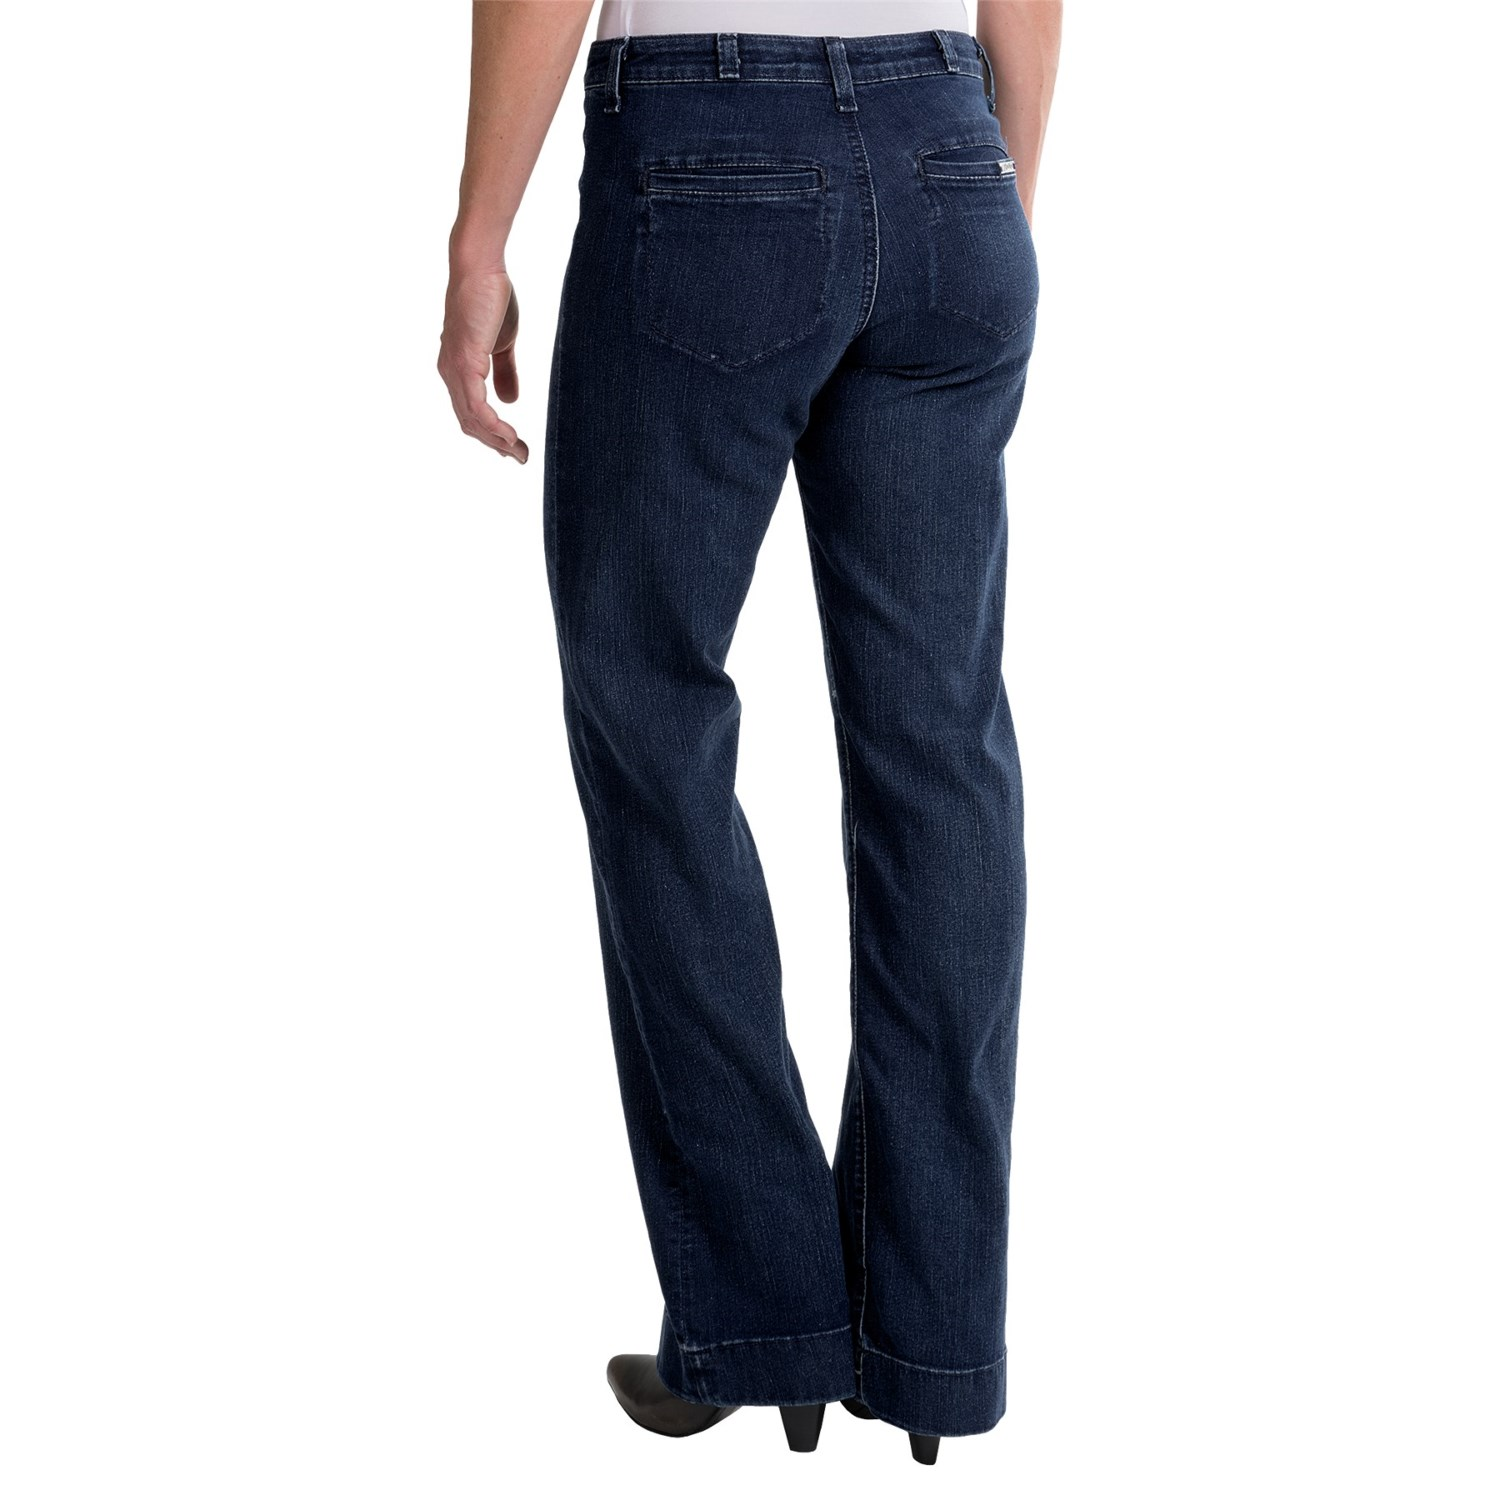 Free shipping BOTH ways on womens wide leg jeans, from our vast selection of styles. Fast delivery, and 24/7/ real-person service with a smile. Click or call